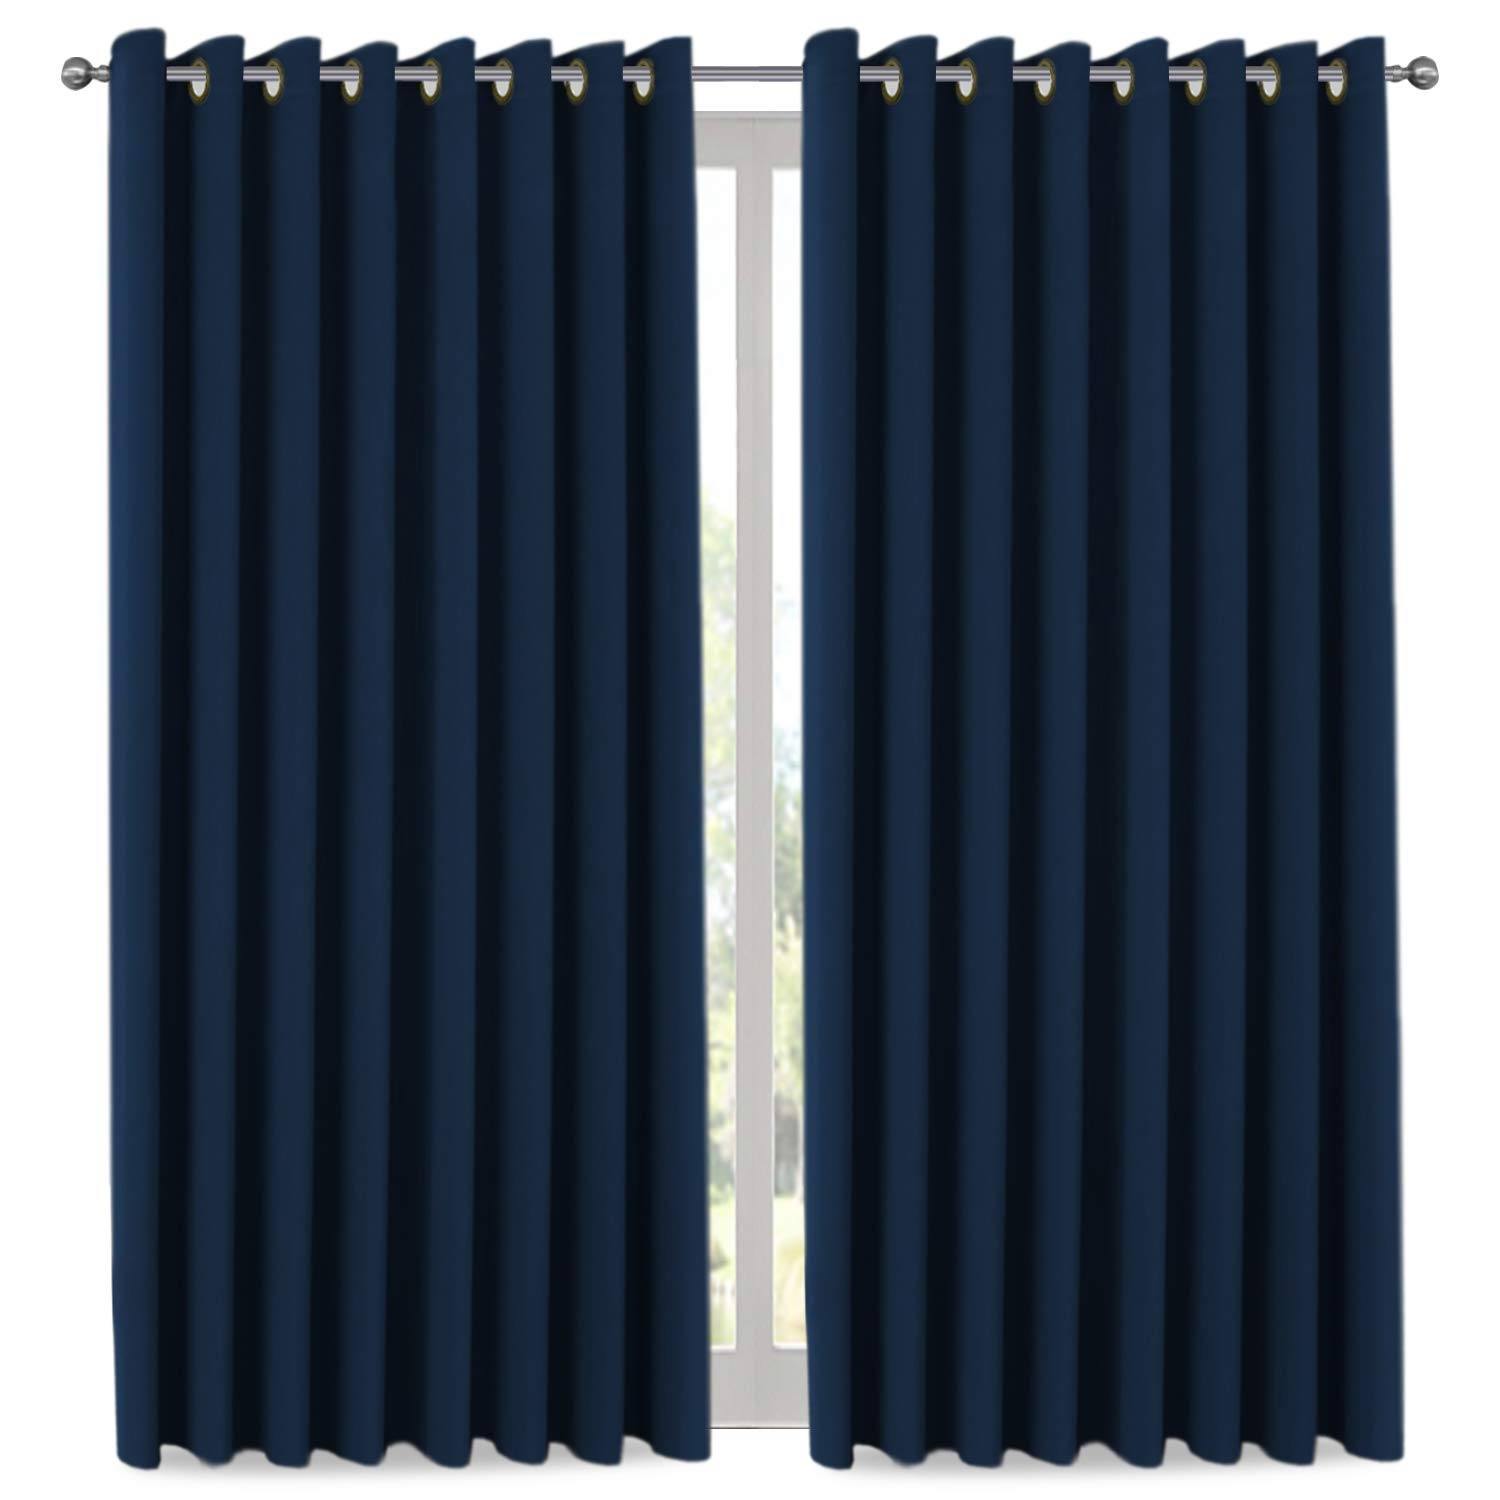 H.VERSAILTEX Ultra Blackout Wider Curtains, Extra Long and Wide Thermal Insulated Large Window Panels (100'' W x 108'' L) / Premium Room Divider (9' Tall by 8.5' Wide - Navy Blue)